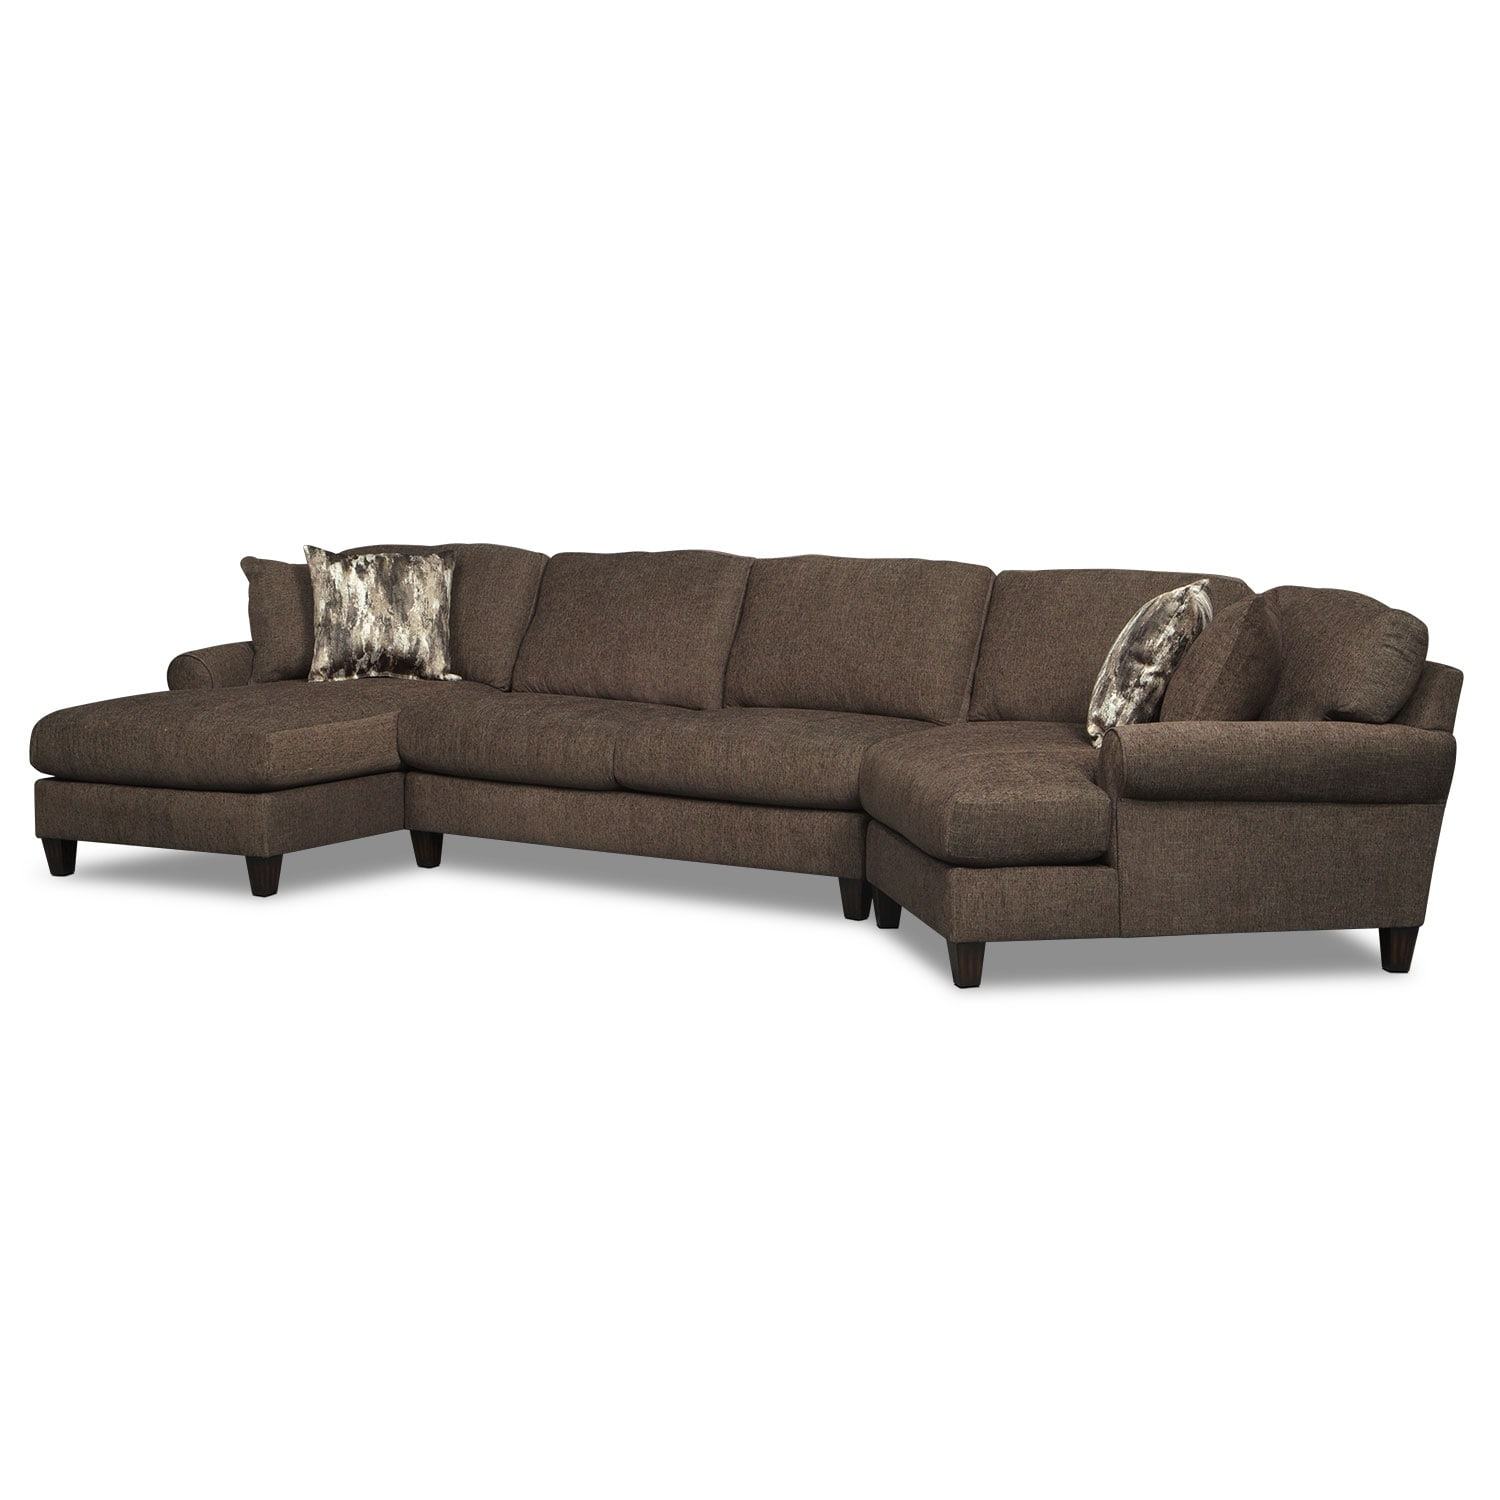 Karma 3-Piece Sectional with Left-Facing Chaise and Right-Facing Cuddler - Smoke